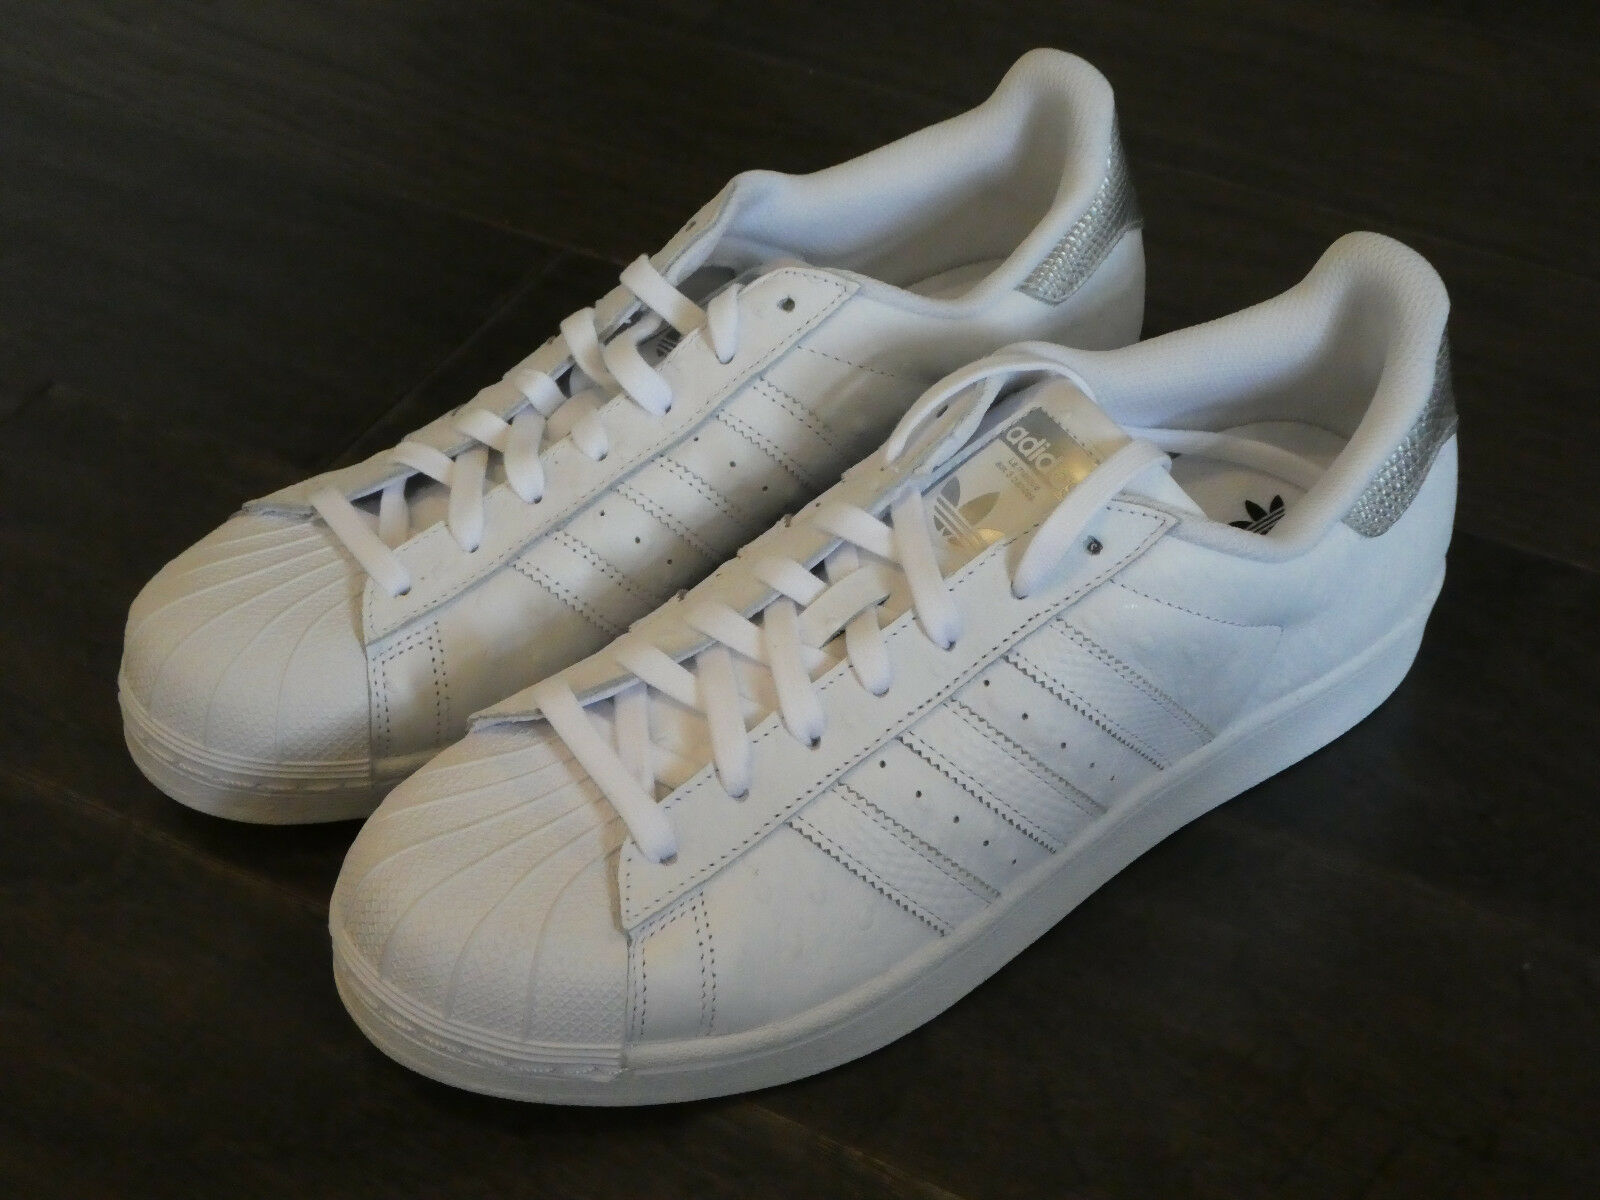 Adidas Superstar Shell Toe shoes new white leather men's sneakers trainer S80341